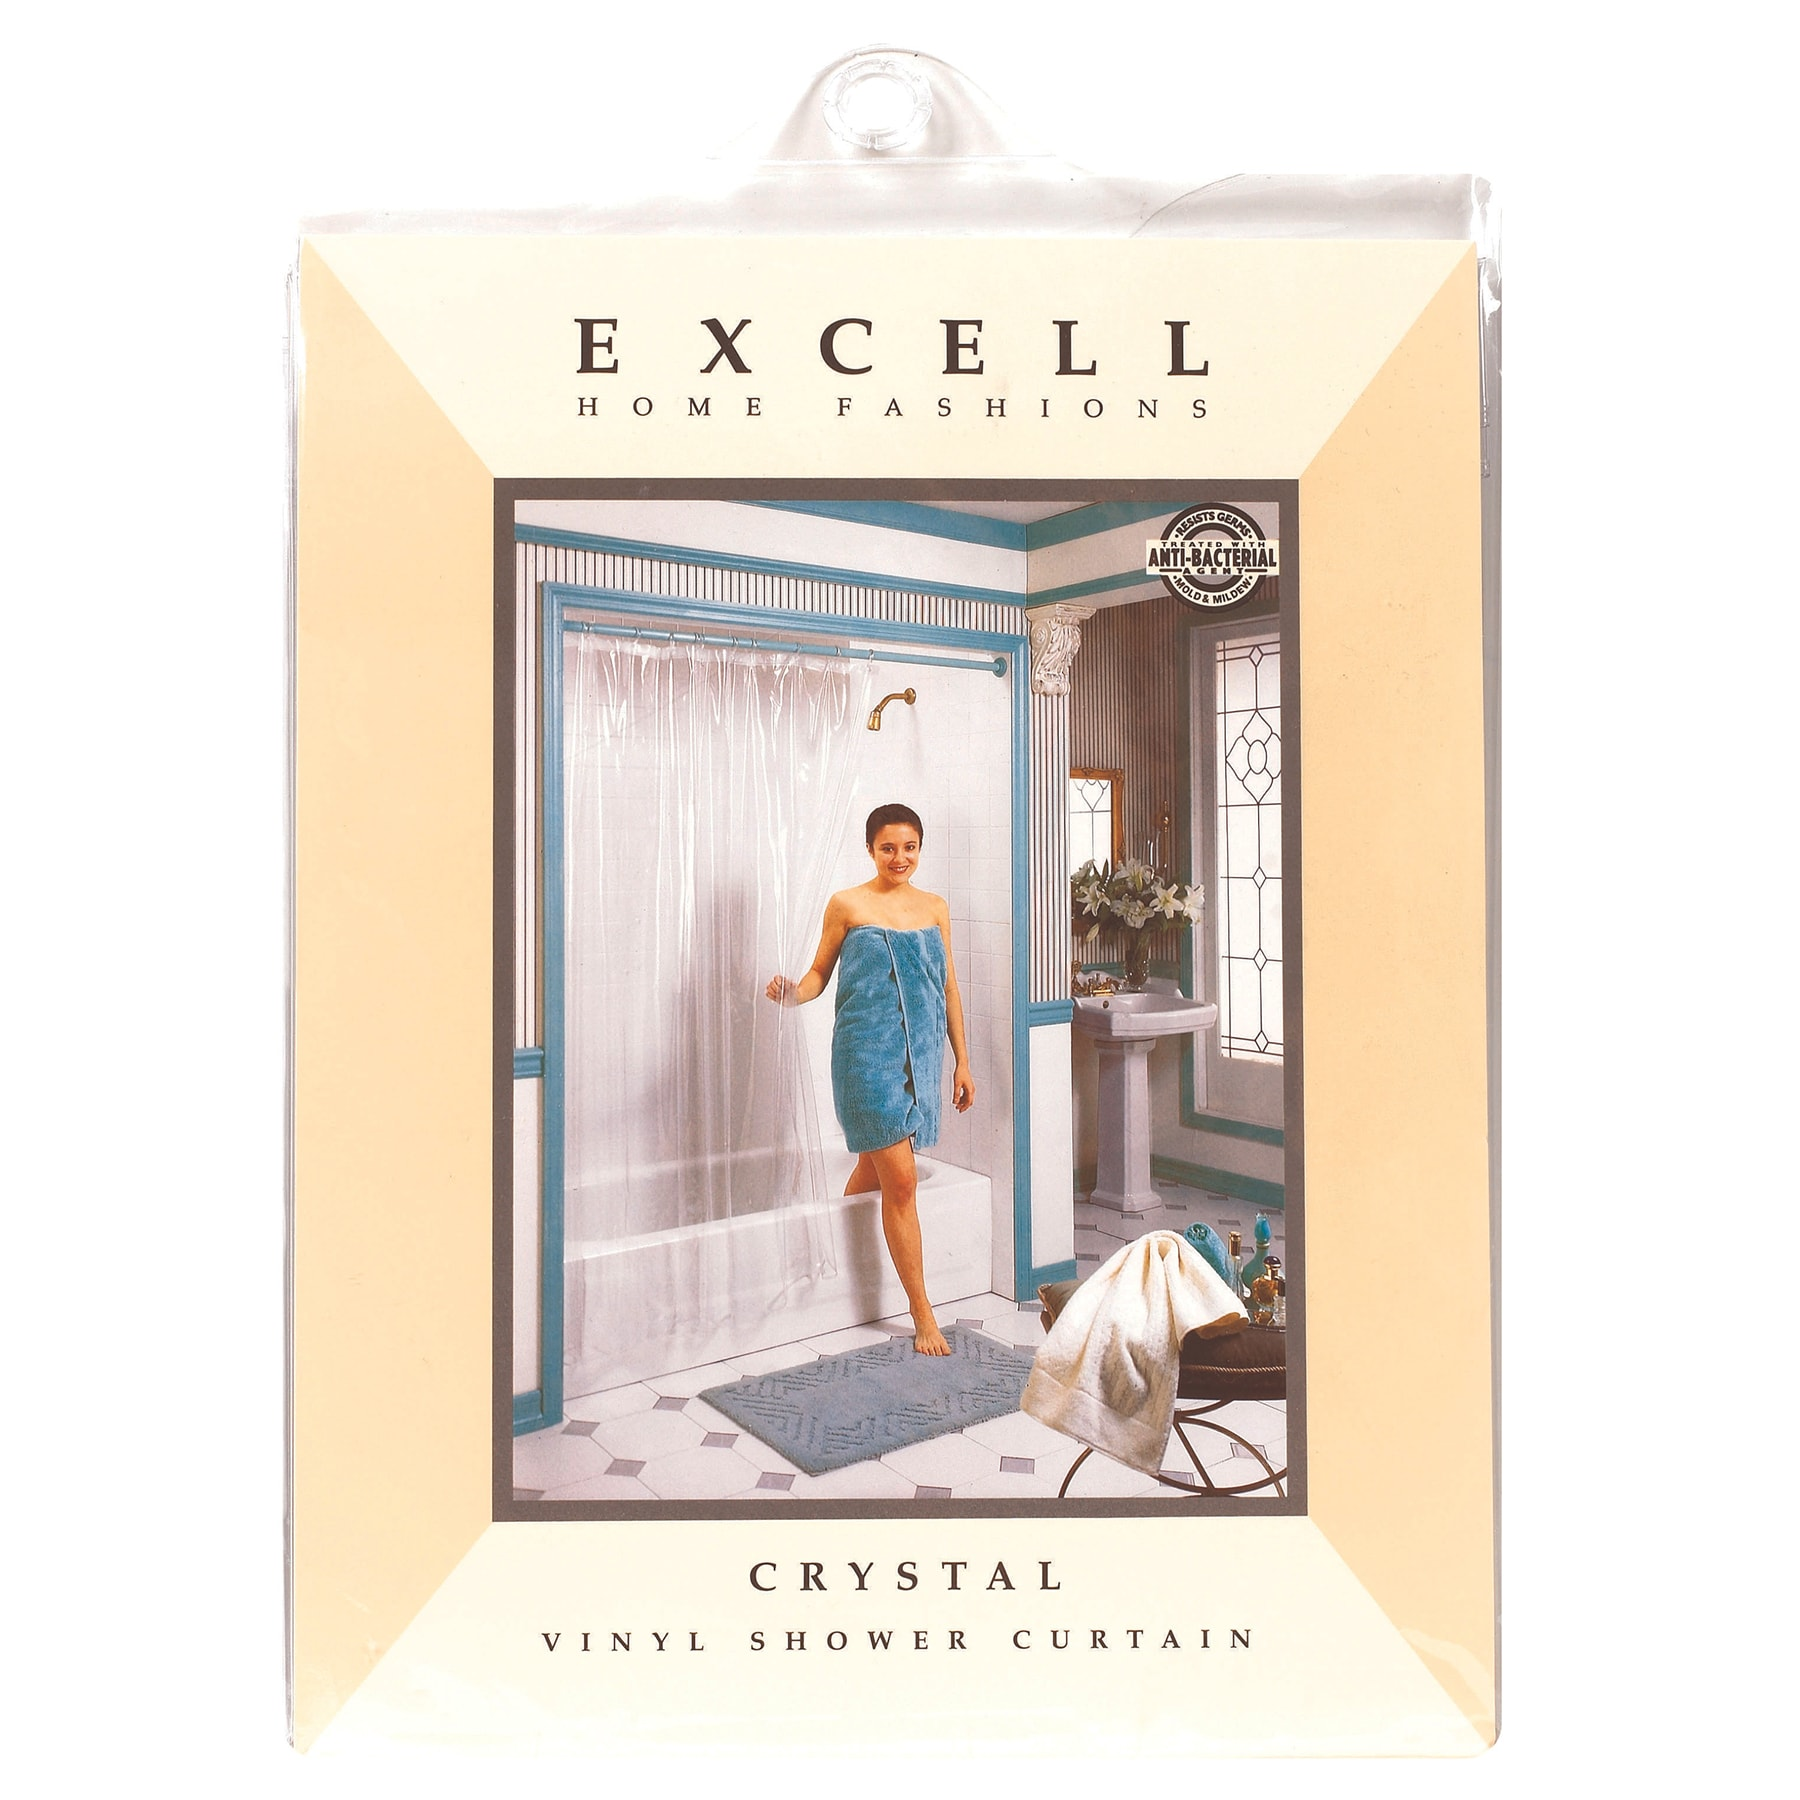 Excell 1ME-40O-649-960 Crystal Vinyl Shower Curtain (Curt...